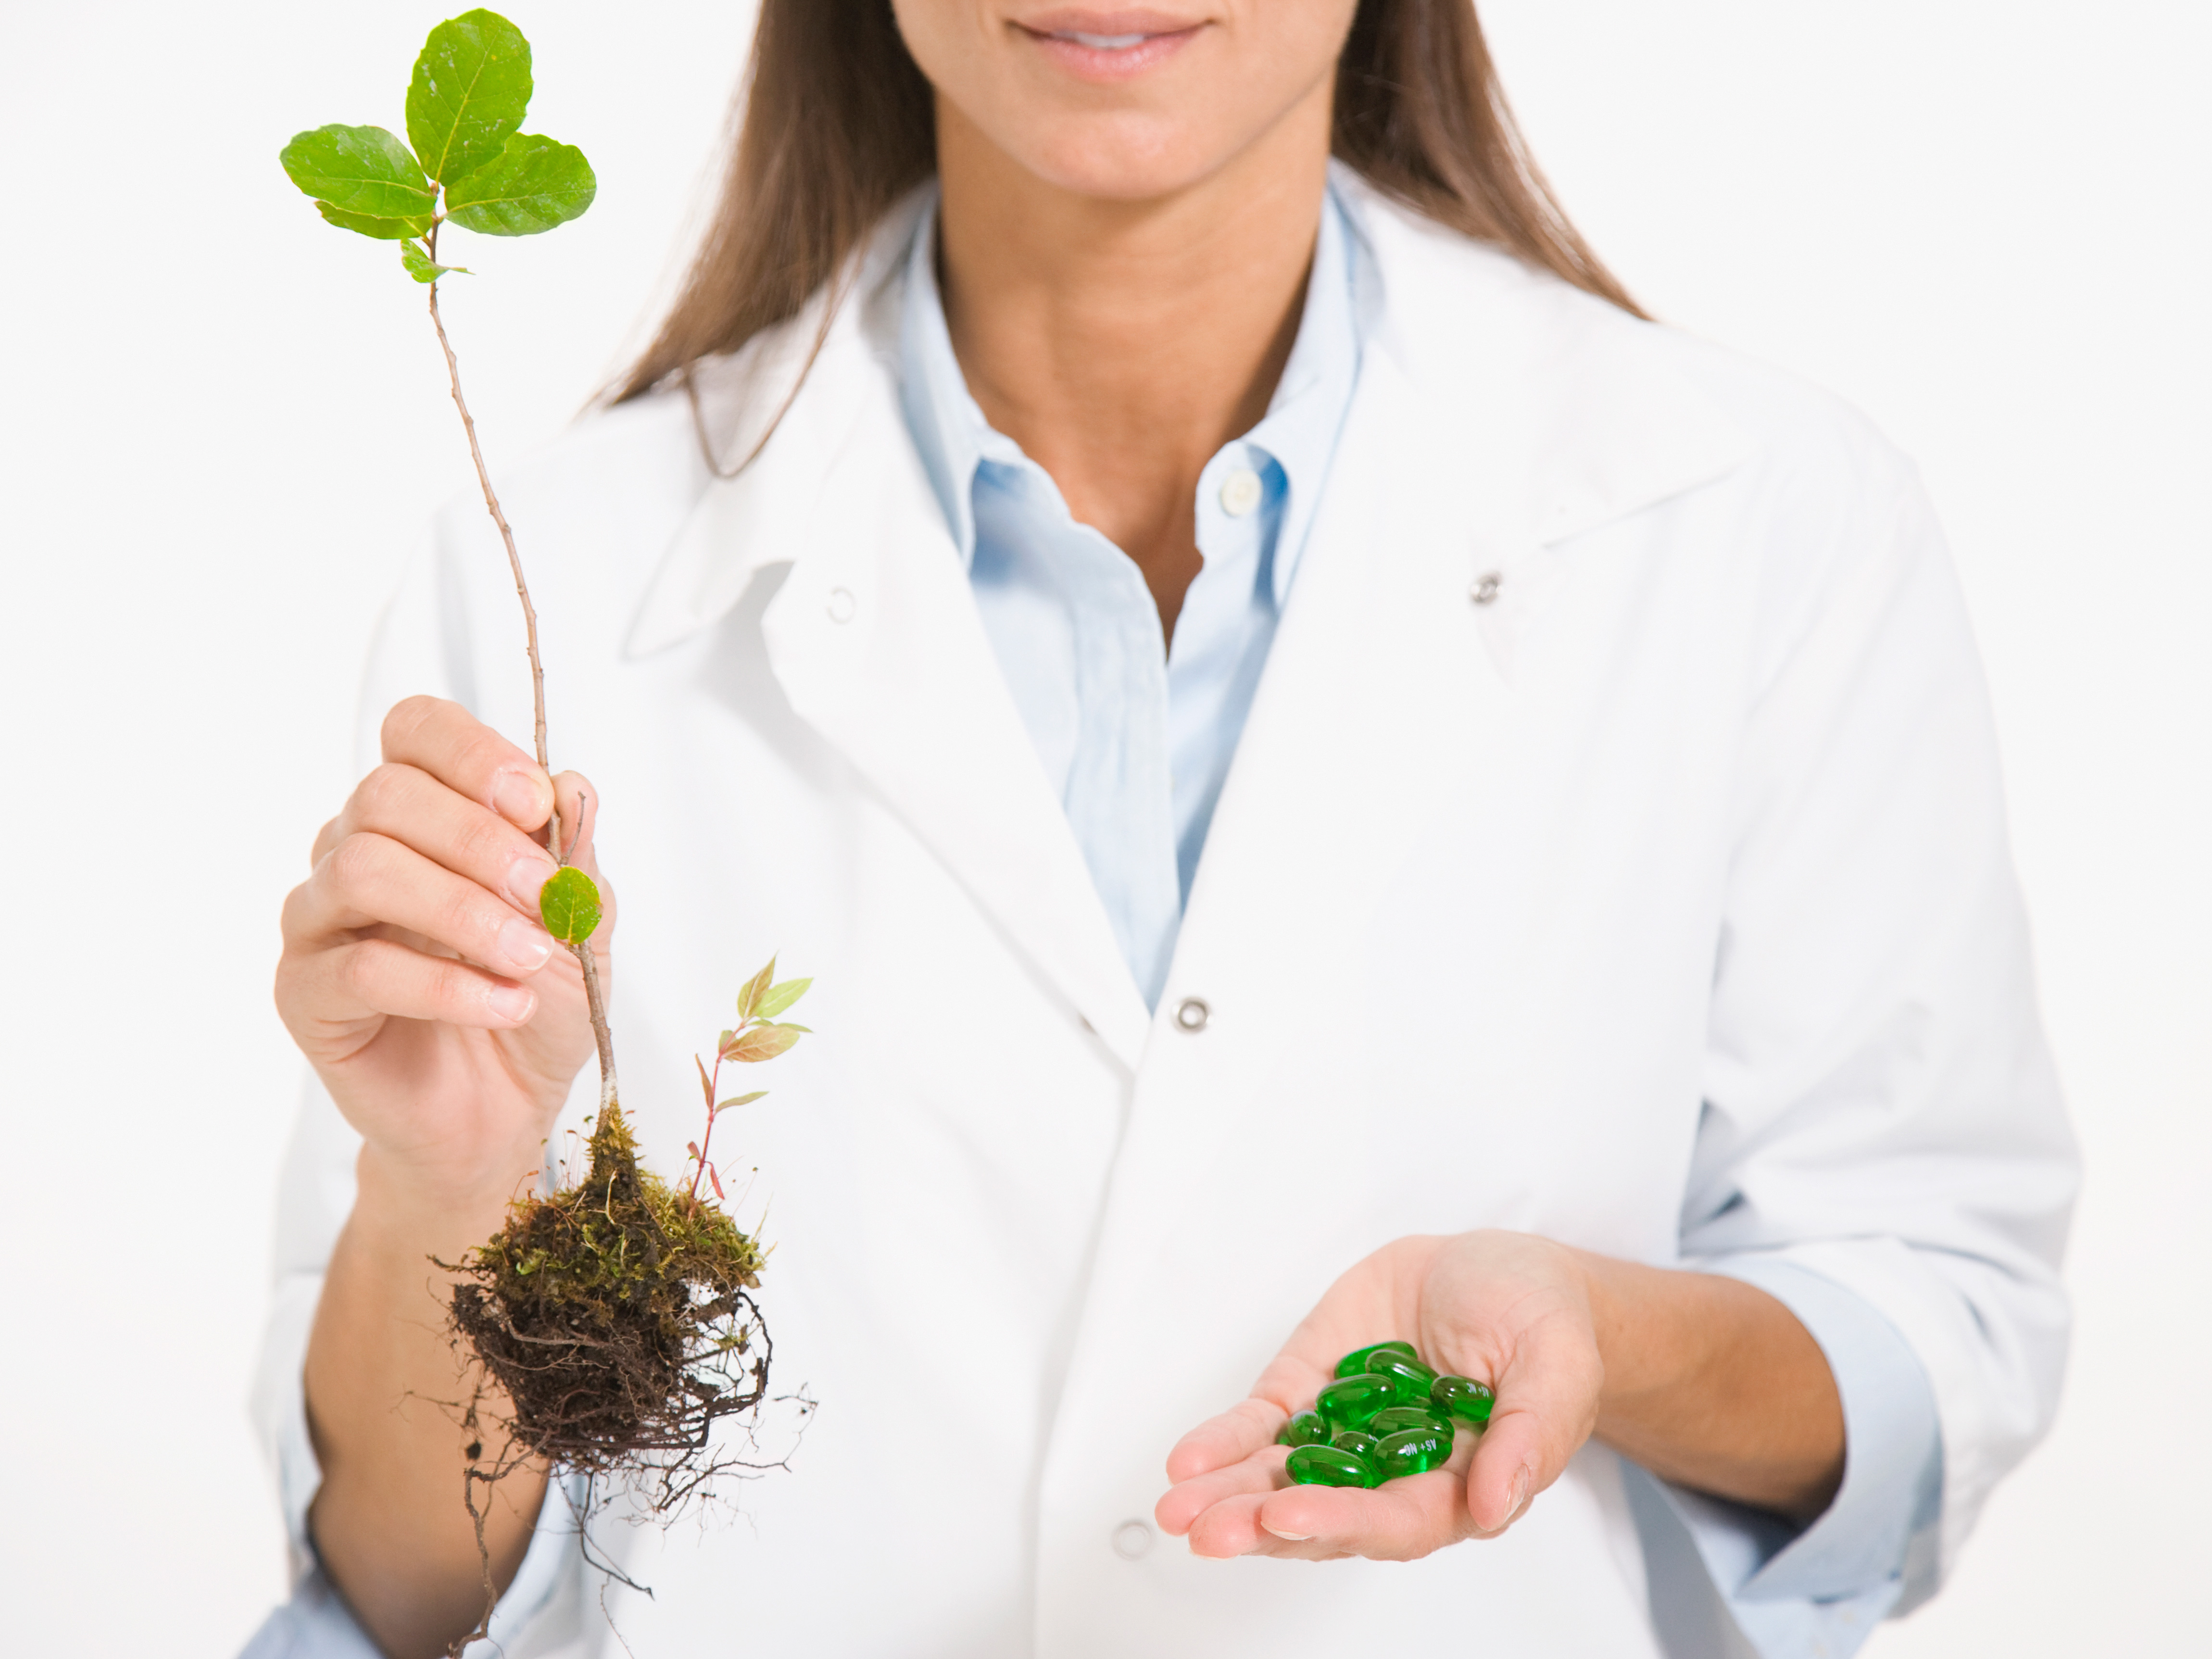 The cancer-fighting plant compound backed by science